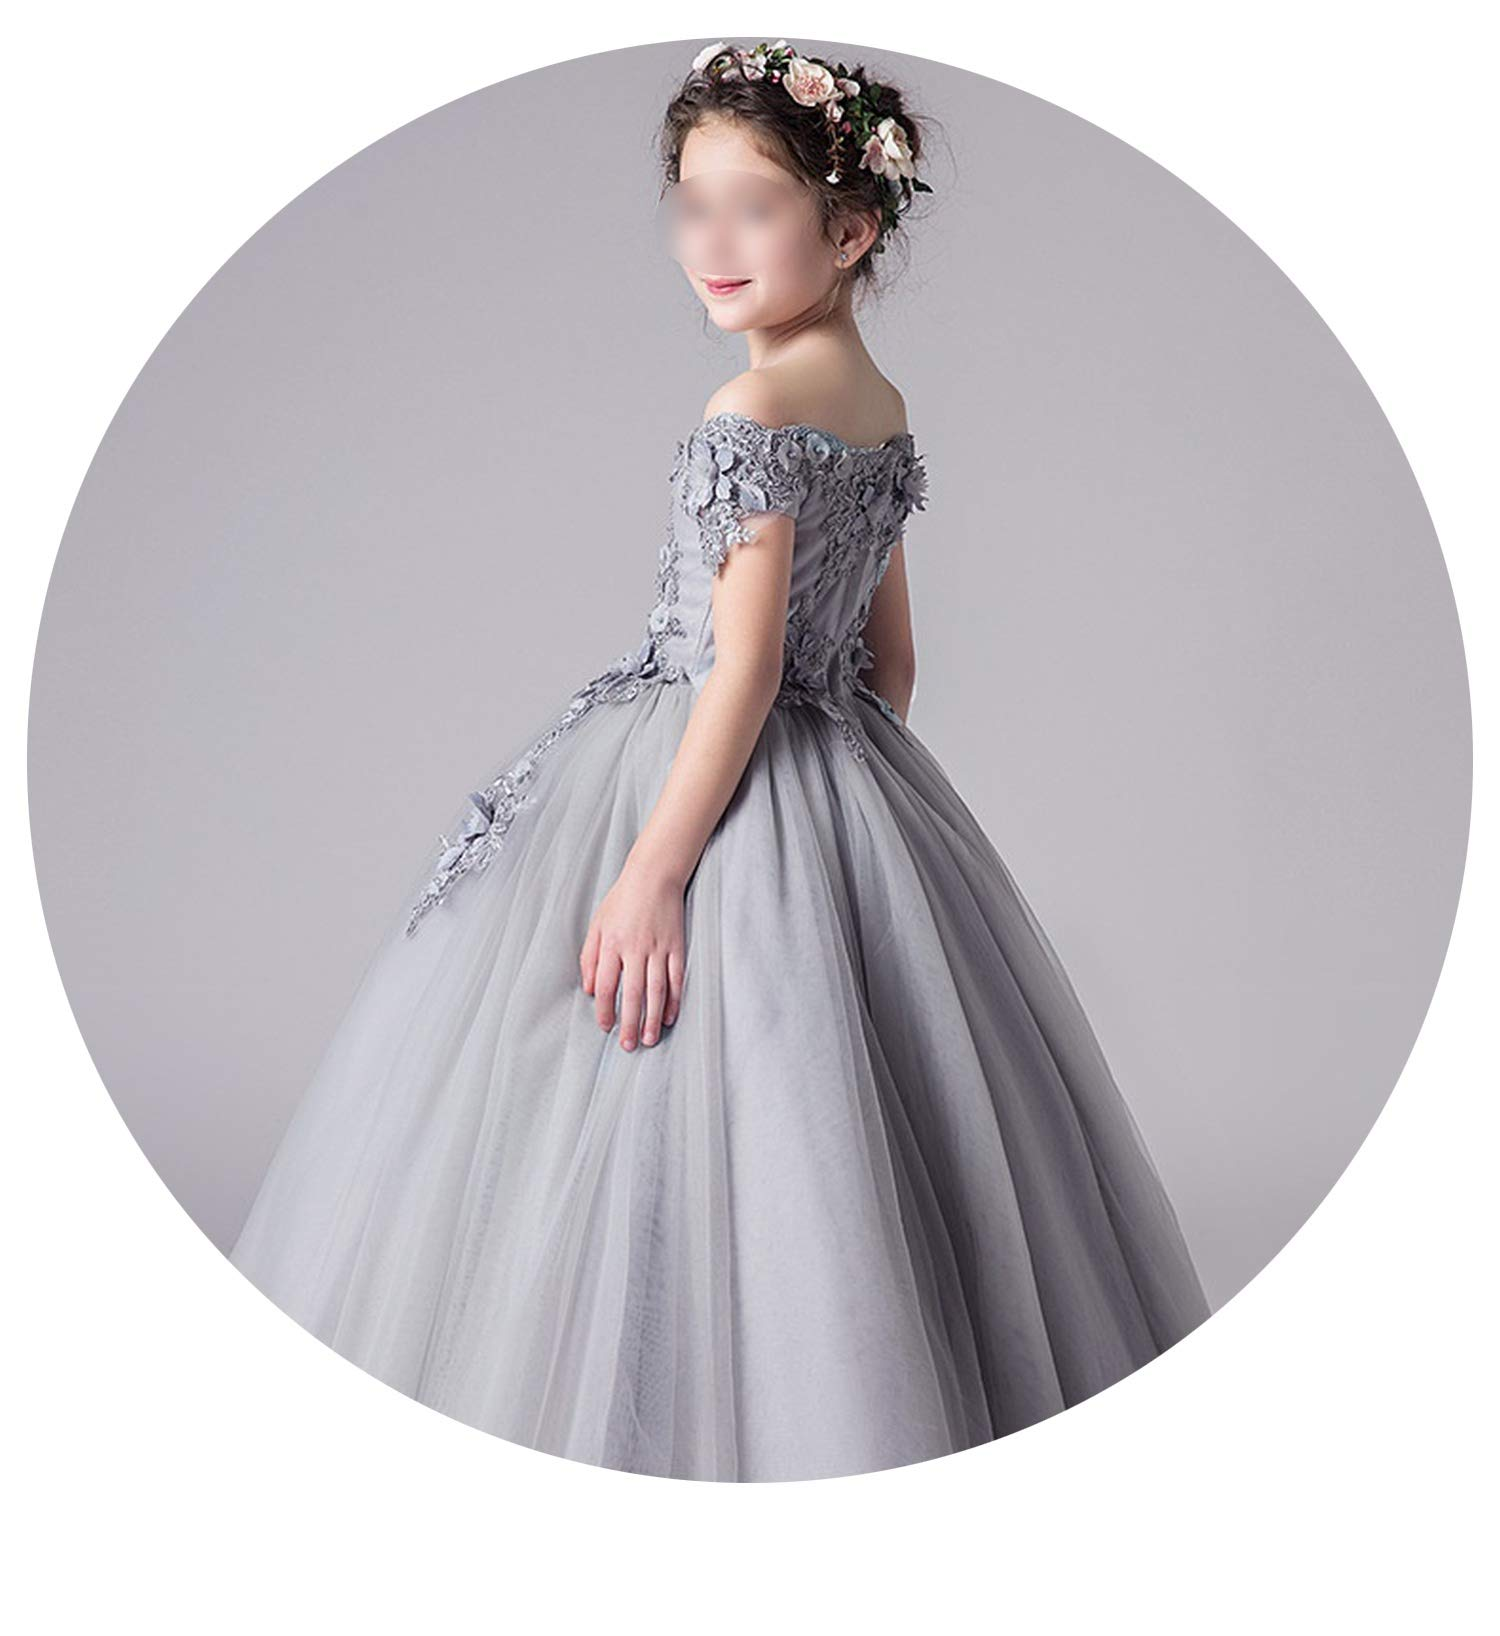 Tulle Lace Infant Pageant for Weddings and Party First Communion Dresses for Girls,as picture4,12